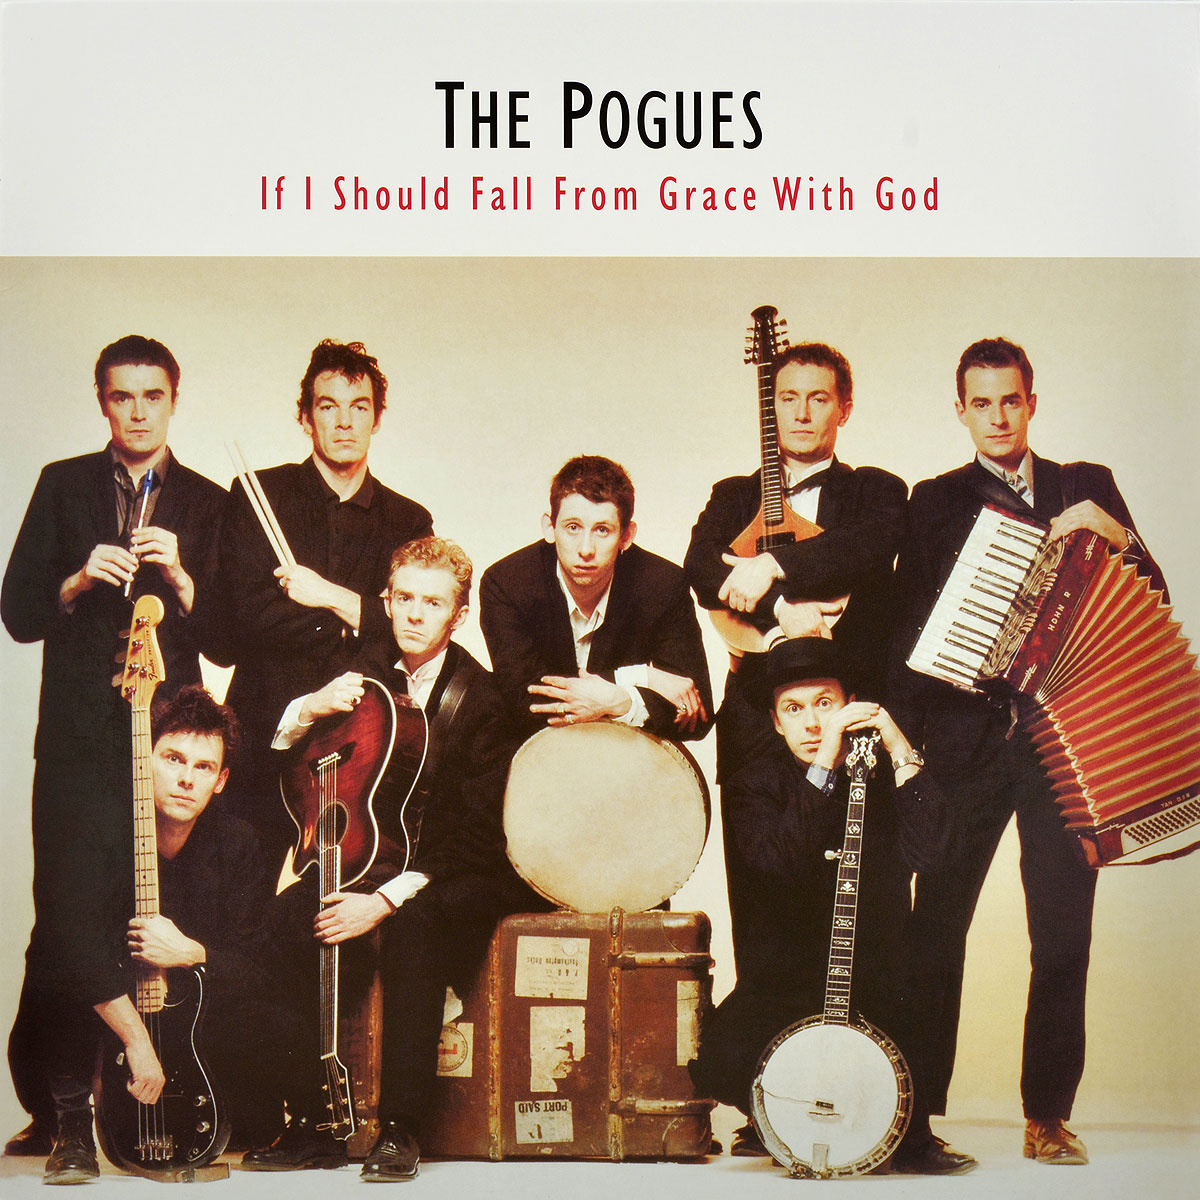 The Pogues The Pogues. If I Should Fall From Grace With God (LP) the jam the jam all mod cons lp